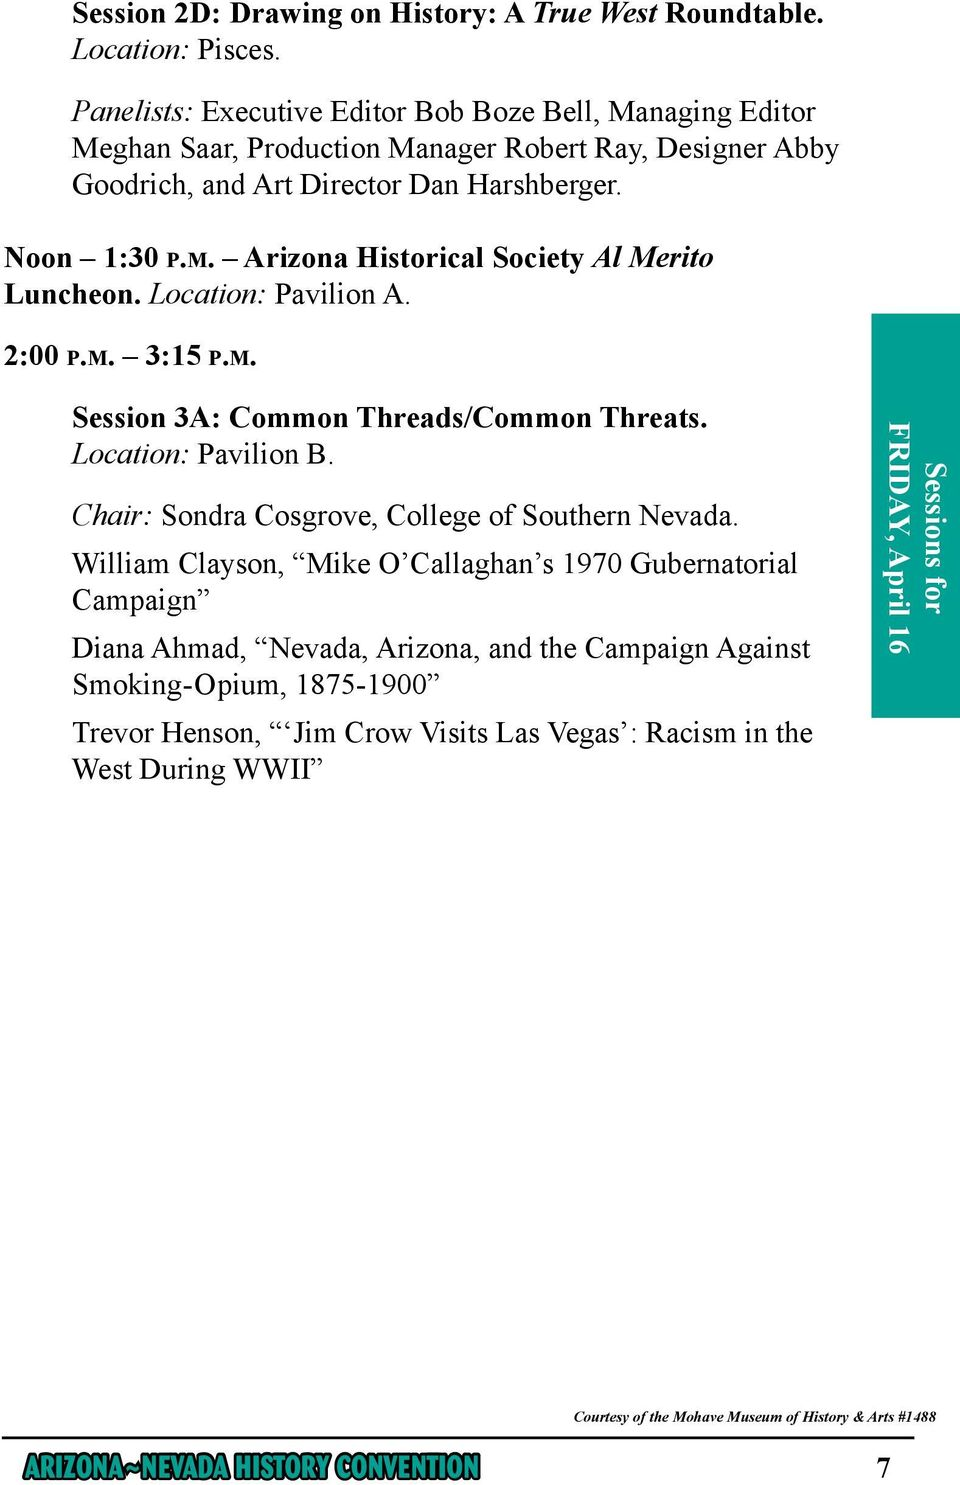 Arizona Historical Society Al Merito Luncheon. Location: Pavilion A. 2:00 p.m. 3:15 p.m. Session 3A: Common Threads/Common Threats. Location: Pavilion B.